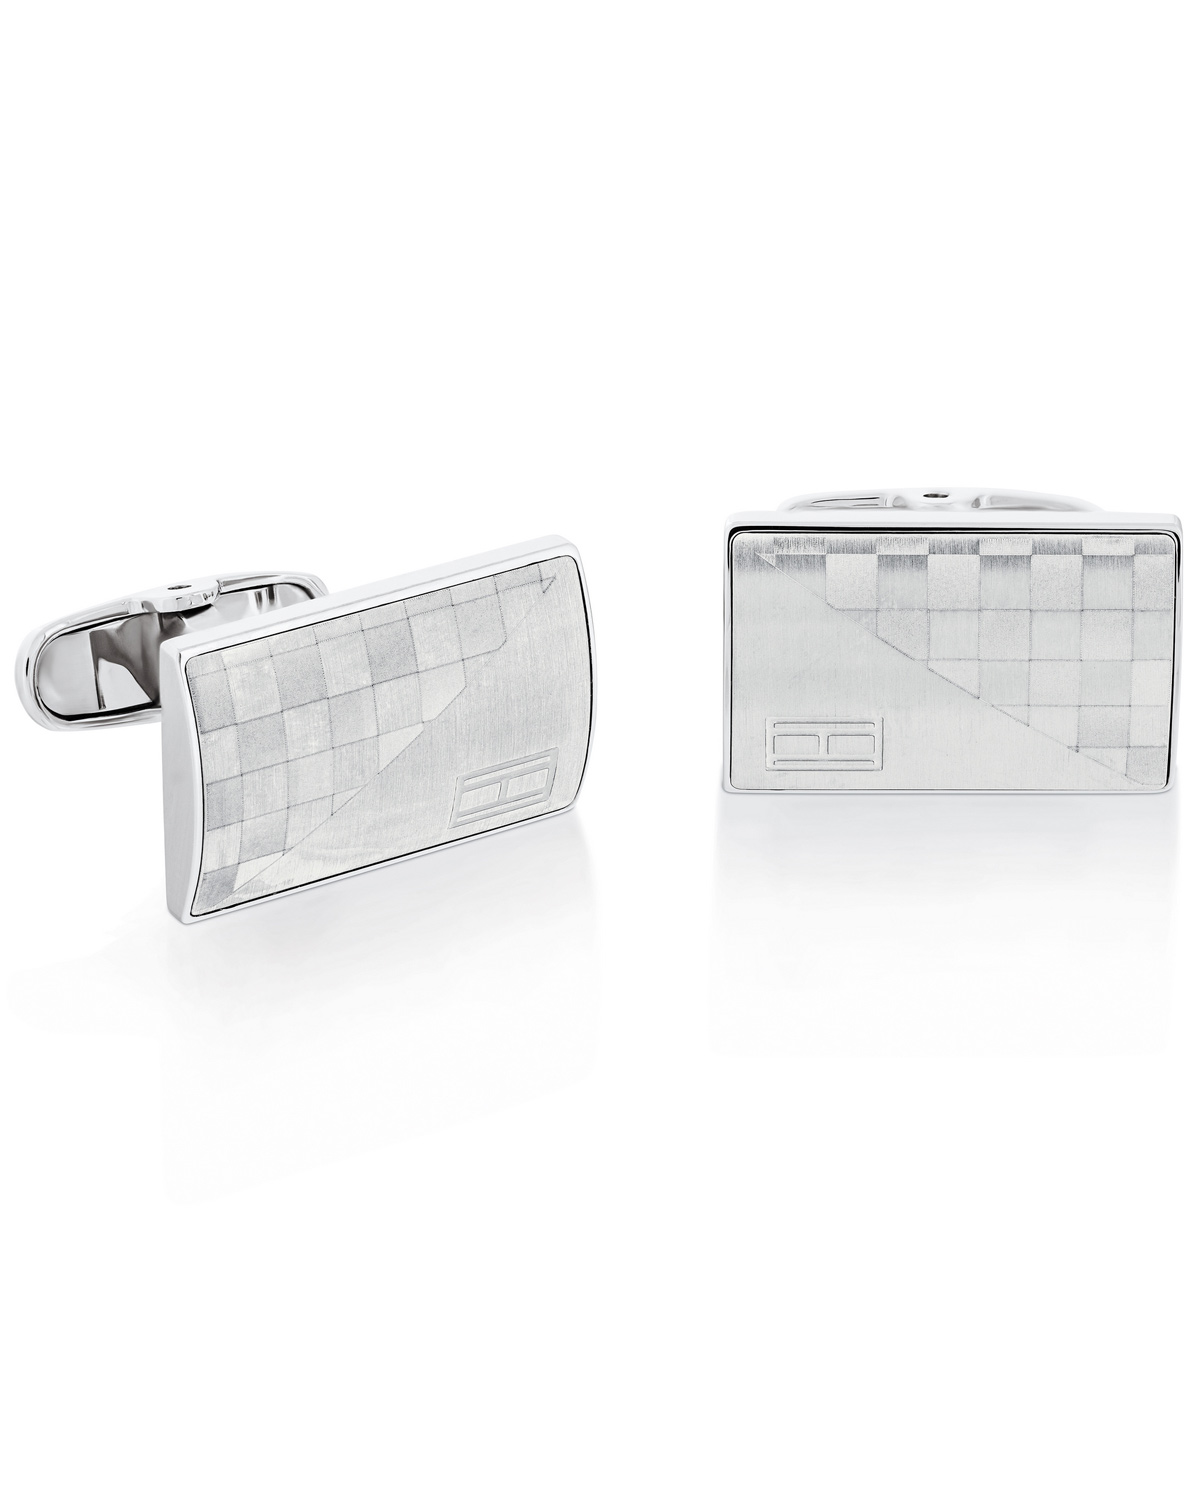 b3c9c091 Stainless Steel Cuff Links by Tommy Hilfiger - 2701092 - OROLOI.gr